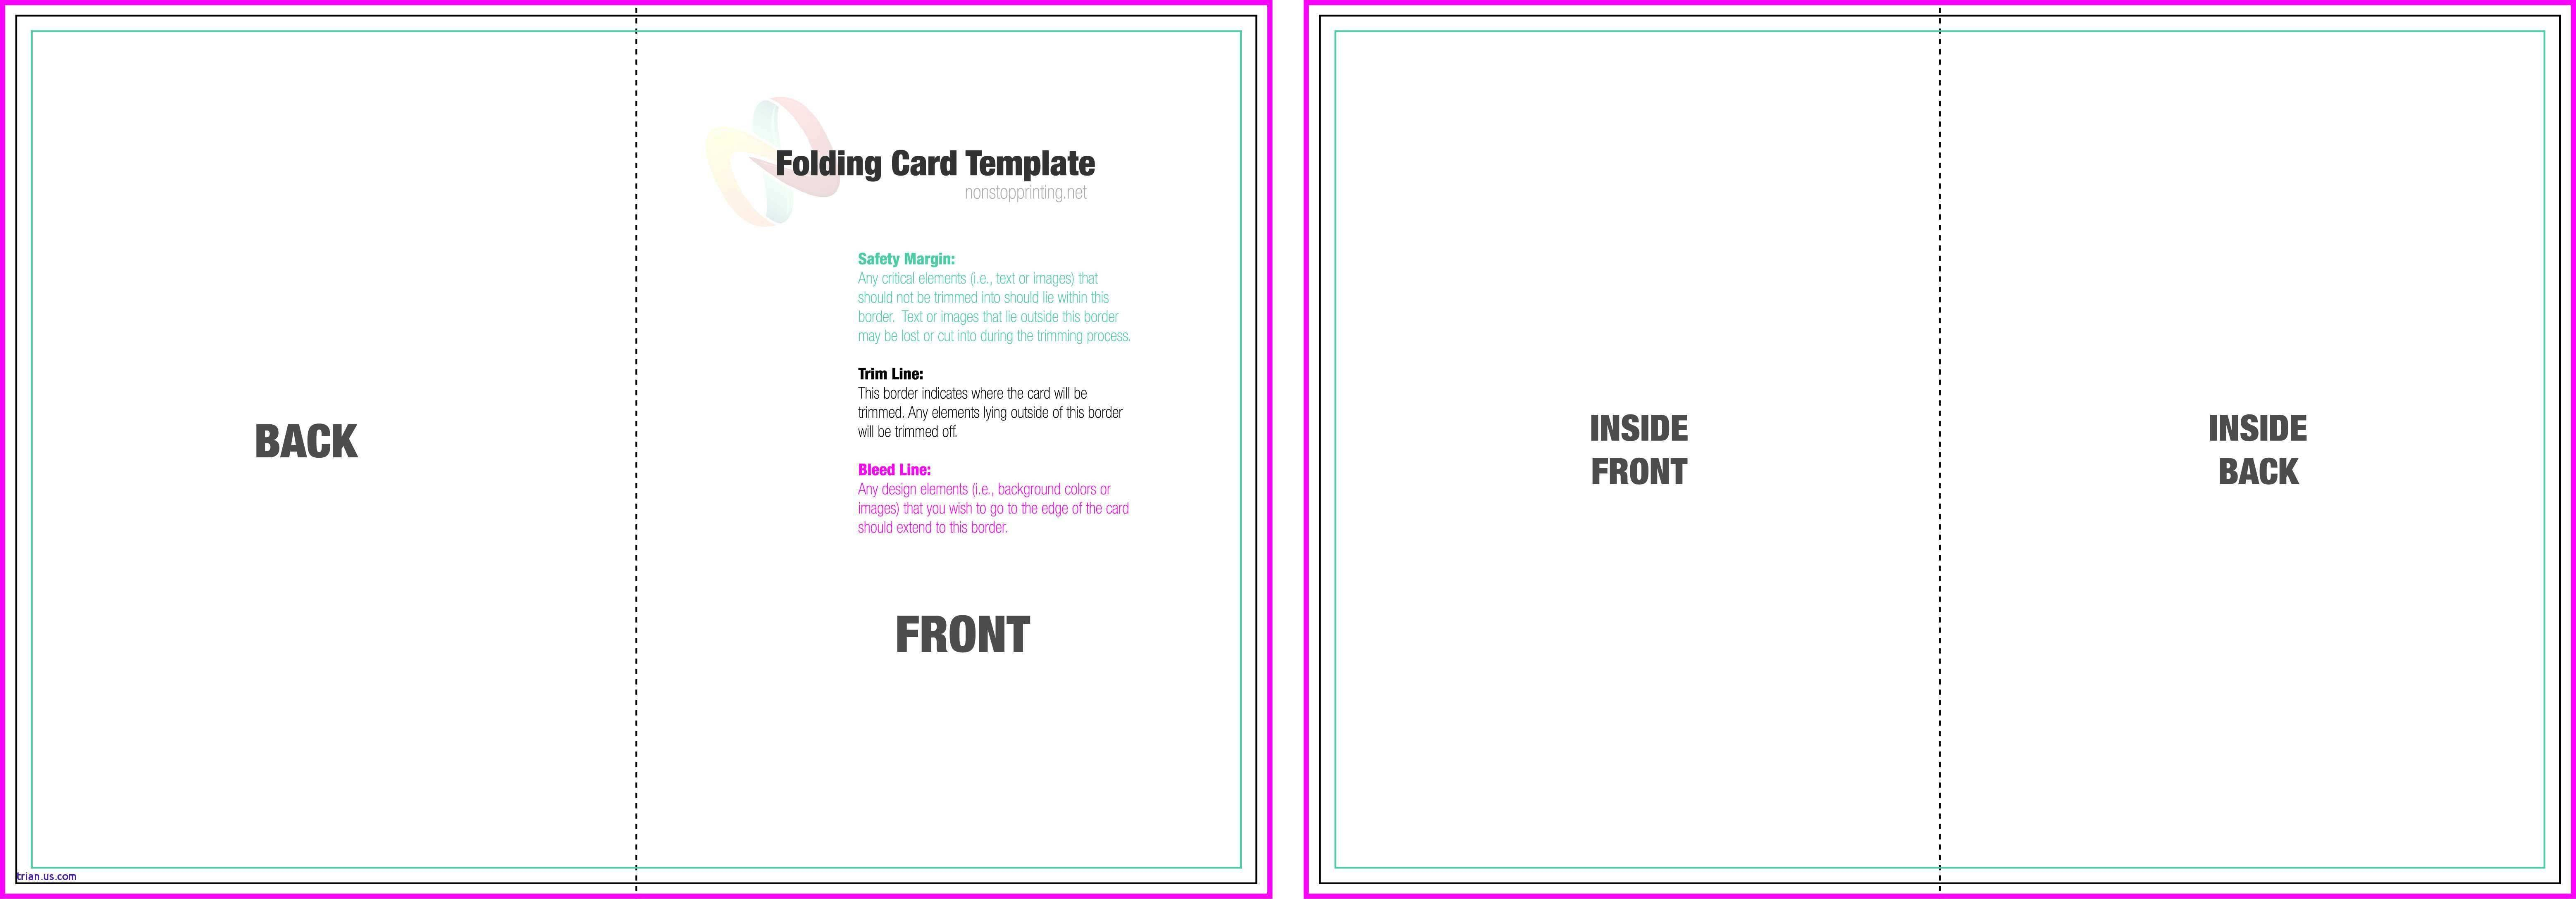 004 Incredible Quarter Fold Card Template Word Blank Highest Clarity Full